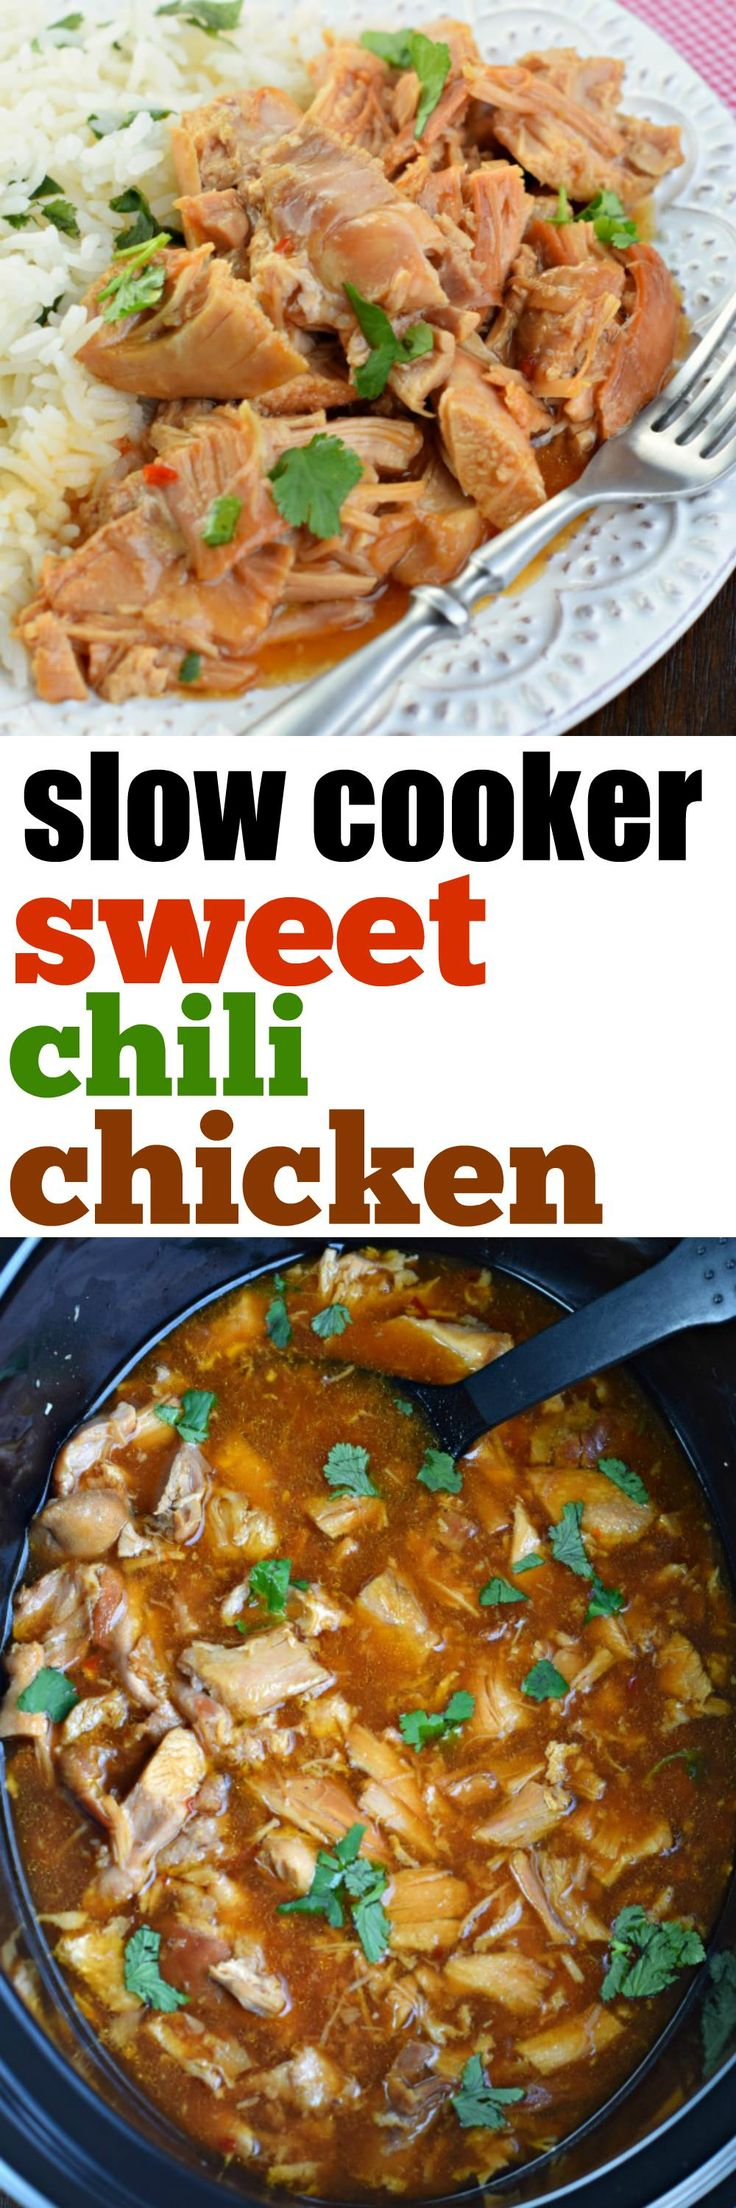 This Slow Cooker Sweet Chili Chicken has a sweet and tangy flavor that ...